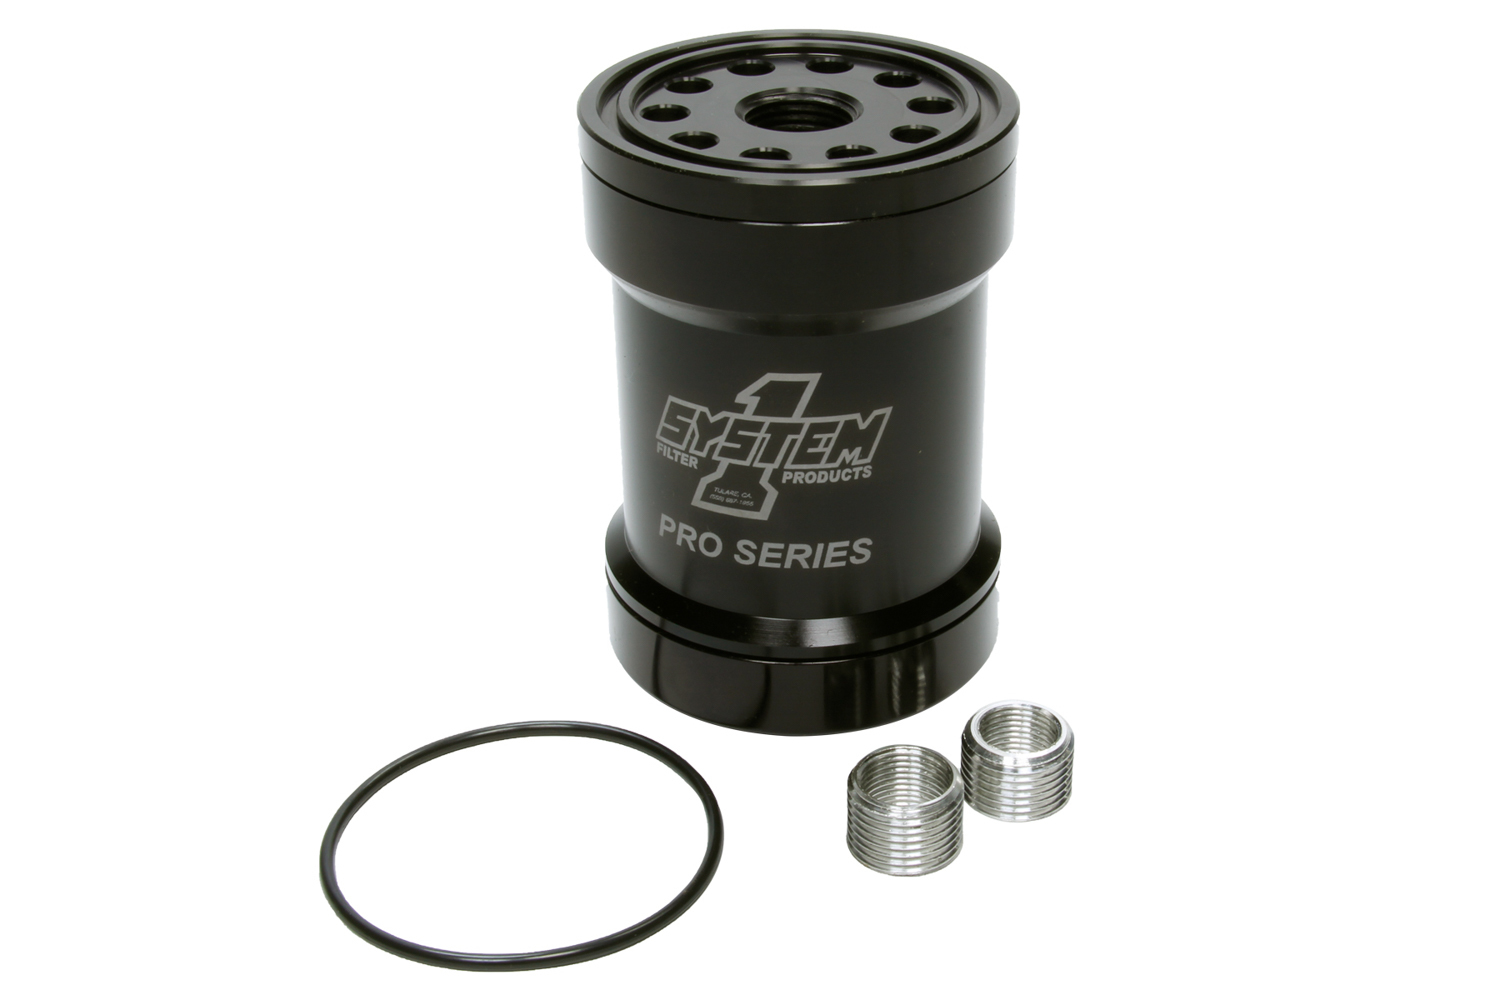 Billet Oil Filter w/Blt Cap 75 Micron - Black